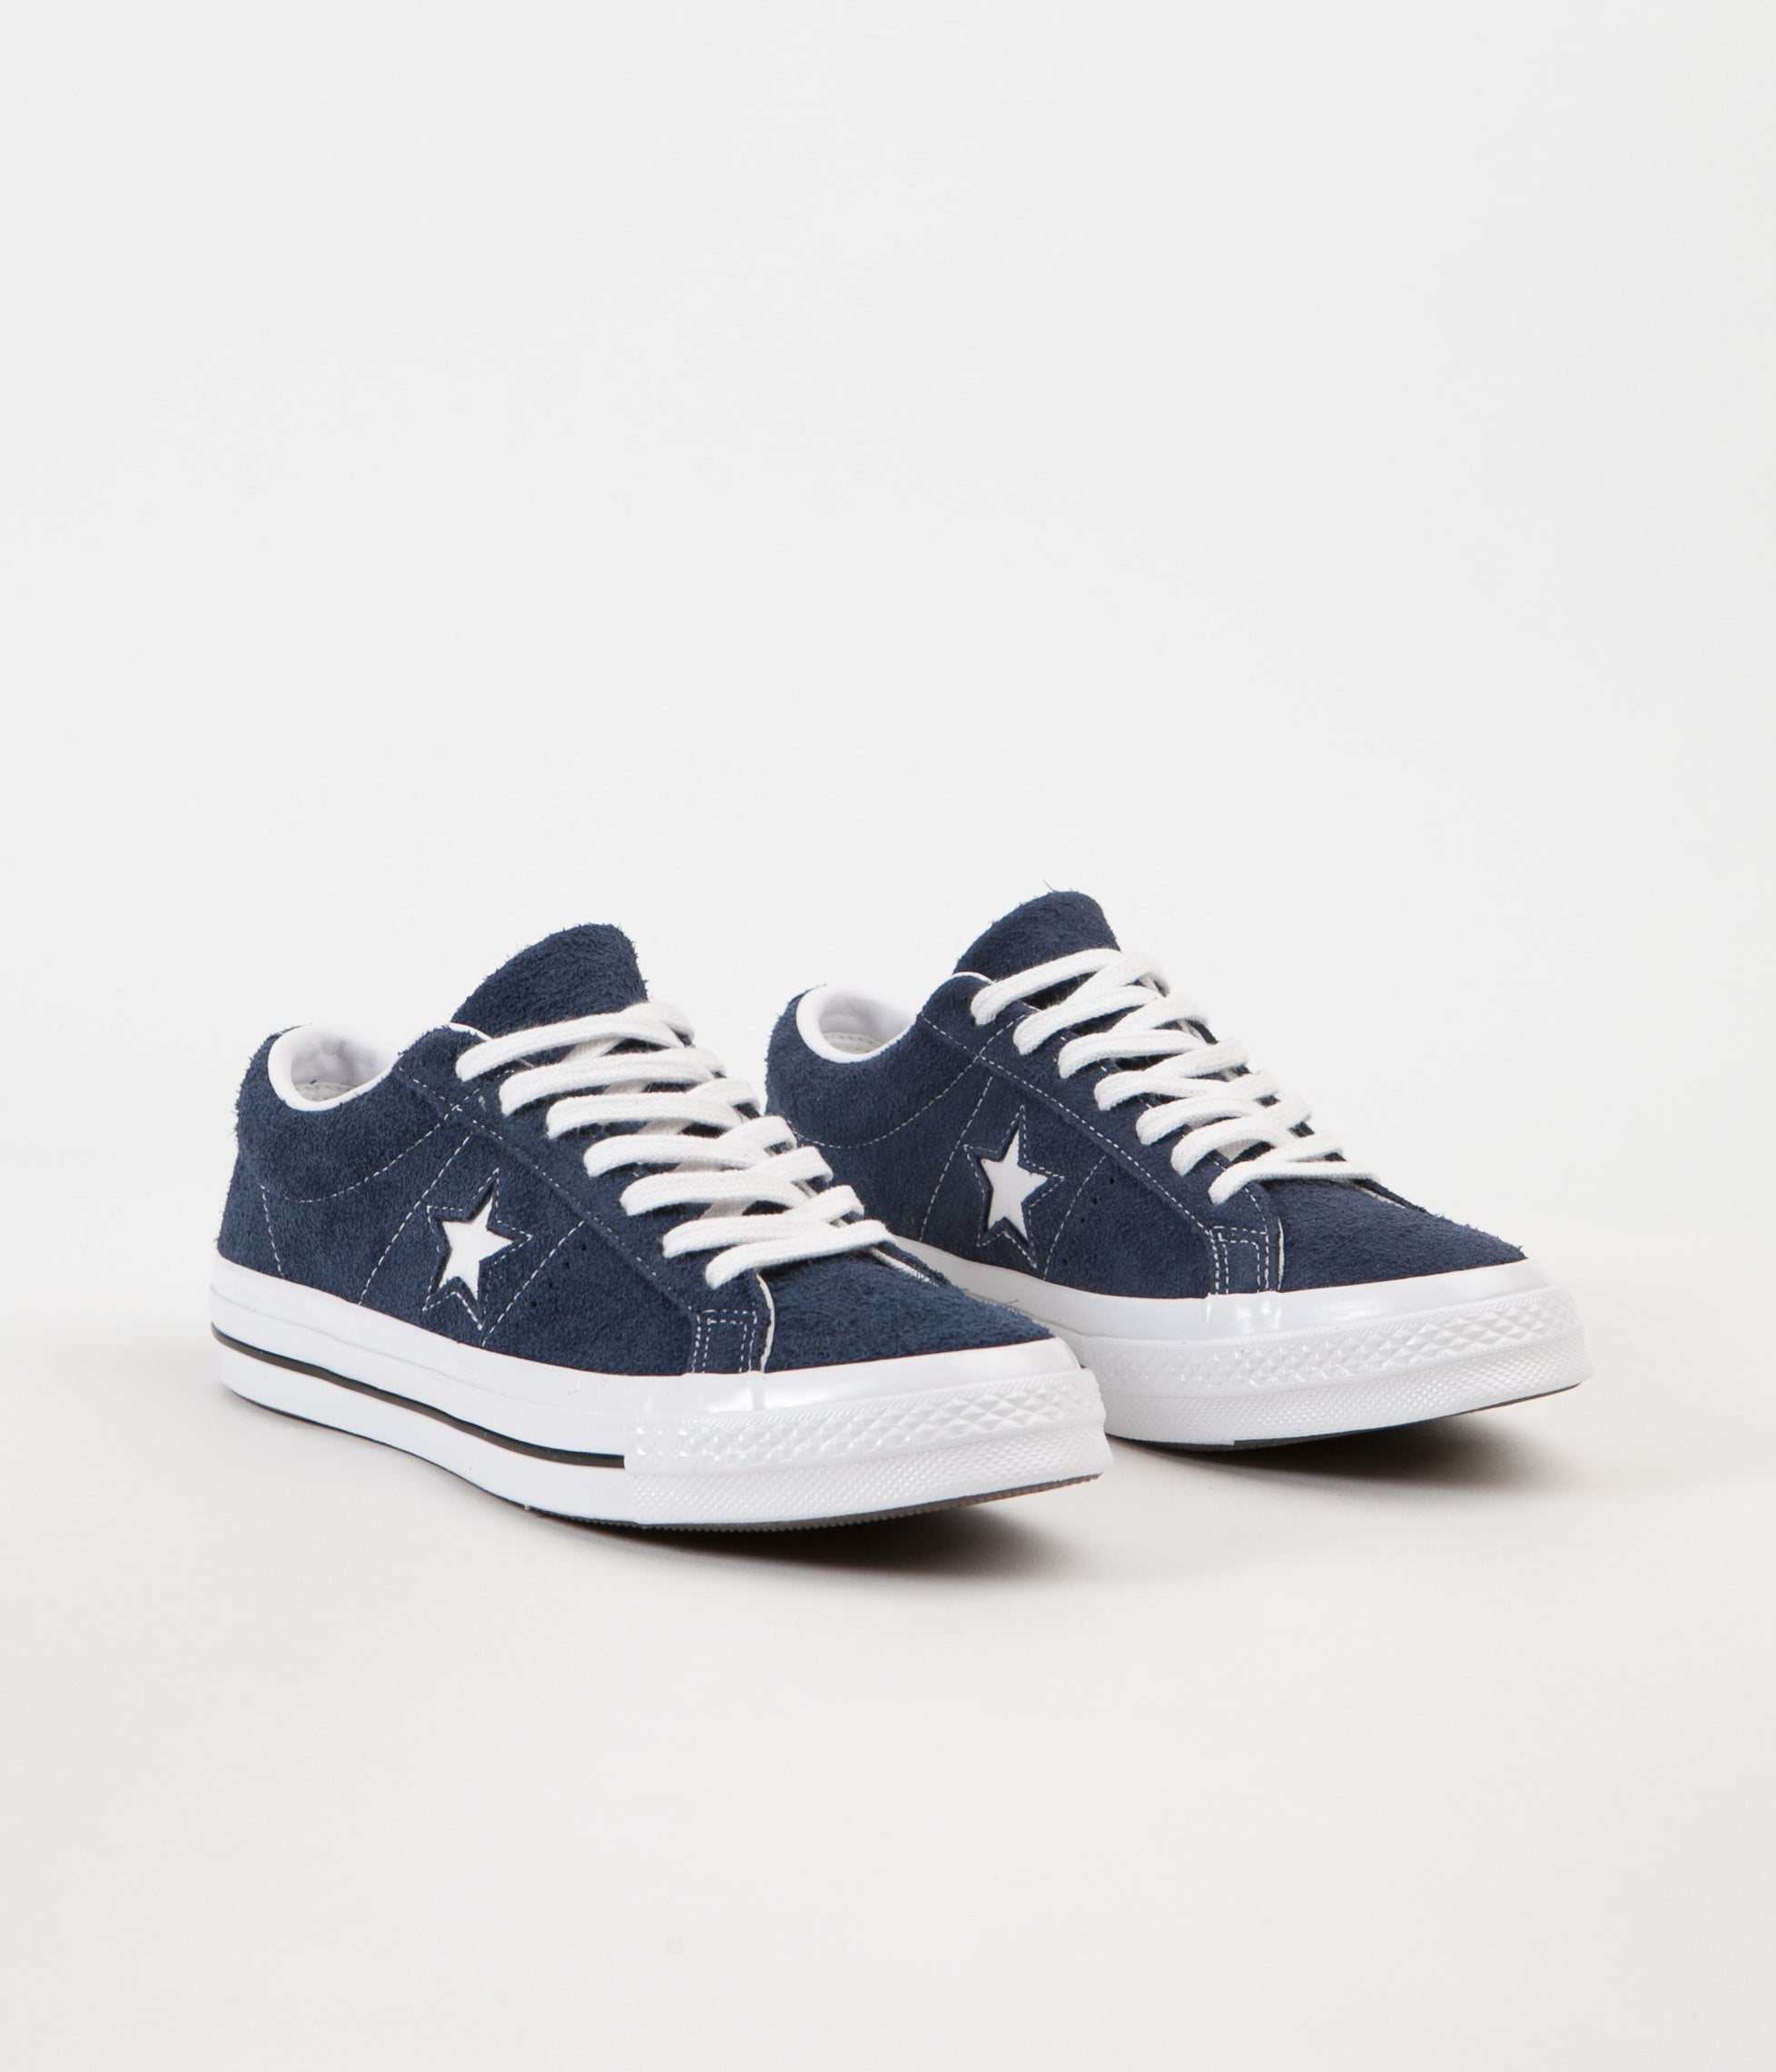 bc0d6d68eea32e ... Converse One Star Ox Shoes - Navy   White   White ...